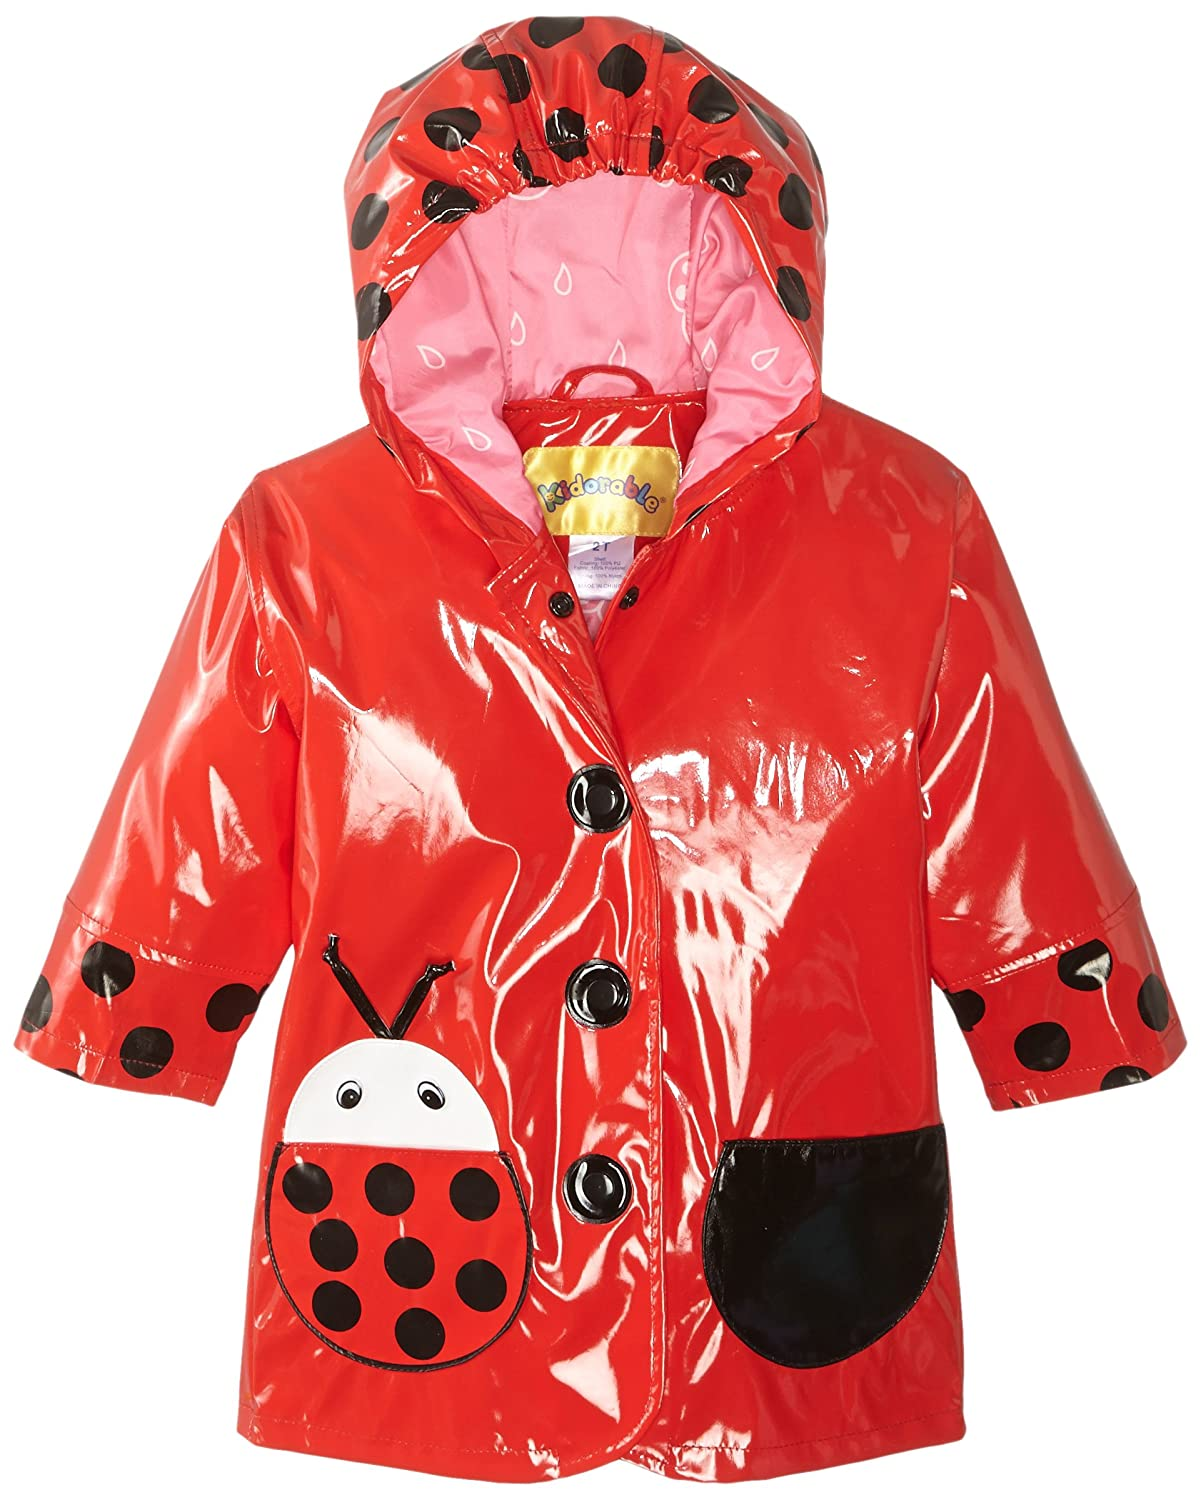 Kidorable Red Ladybug PU All-Weather Raincoat for Girls With Fun Polka Dots and Ladybug Pocket Kidorable- Quarterdeck 399021